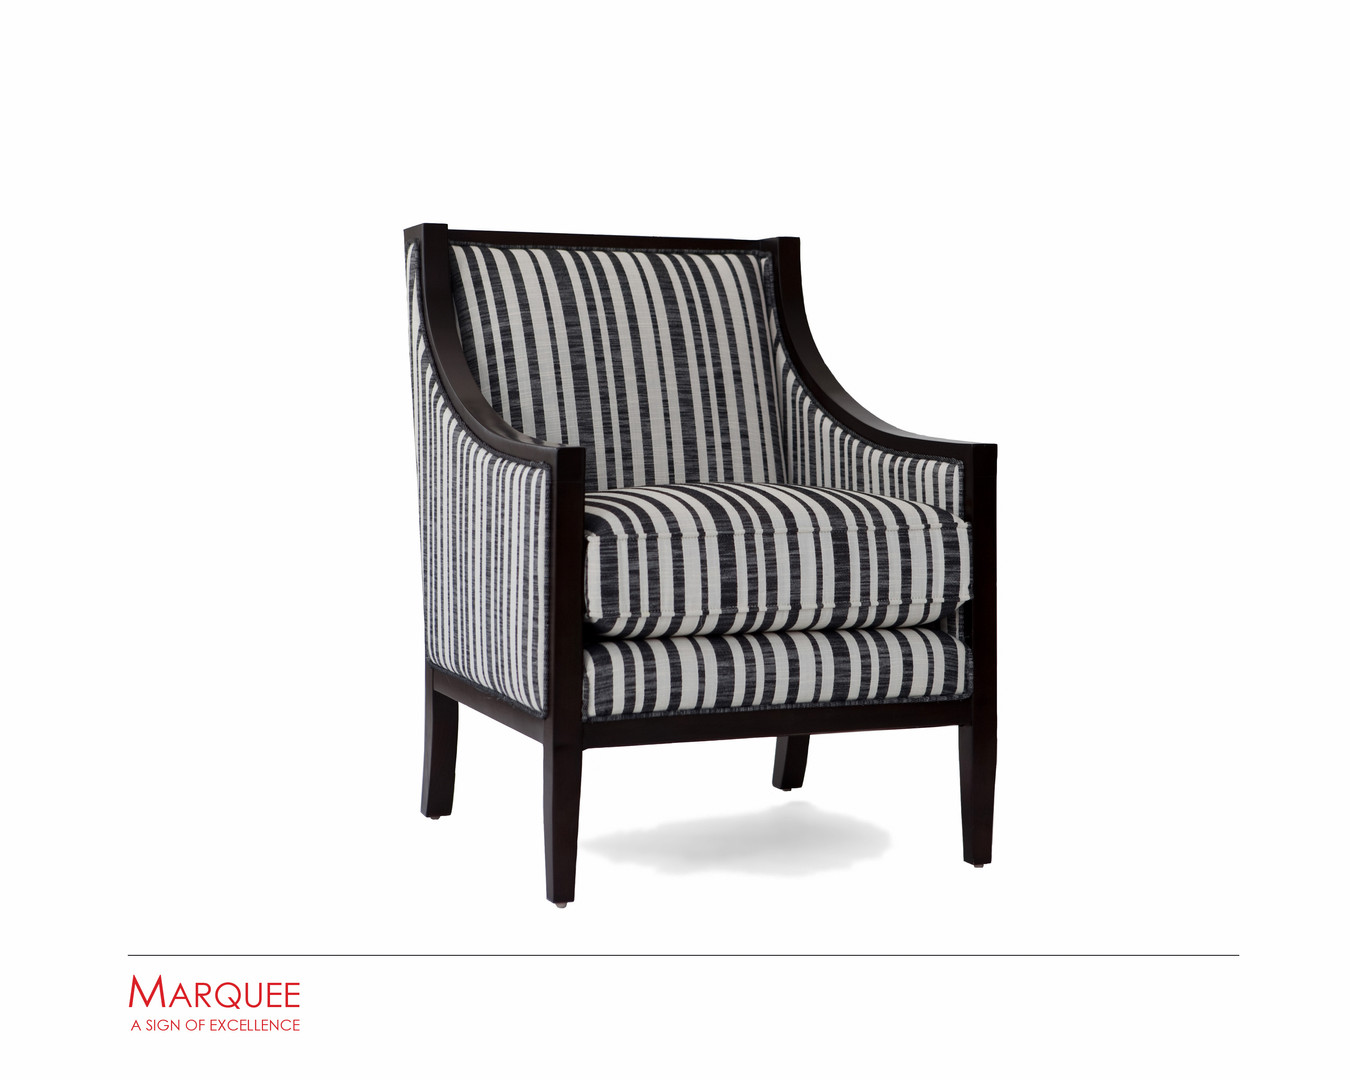 Furniture Photography - Marquee Chair